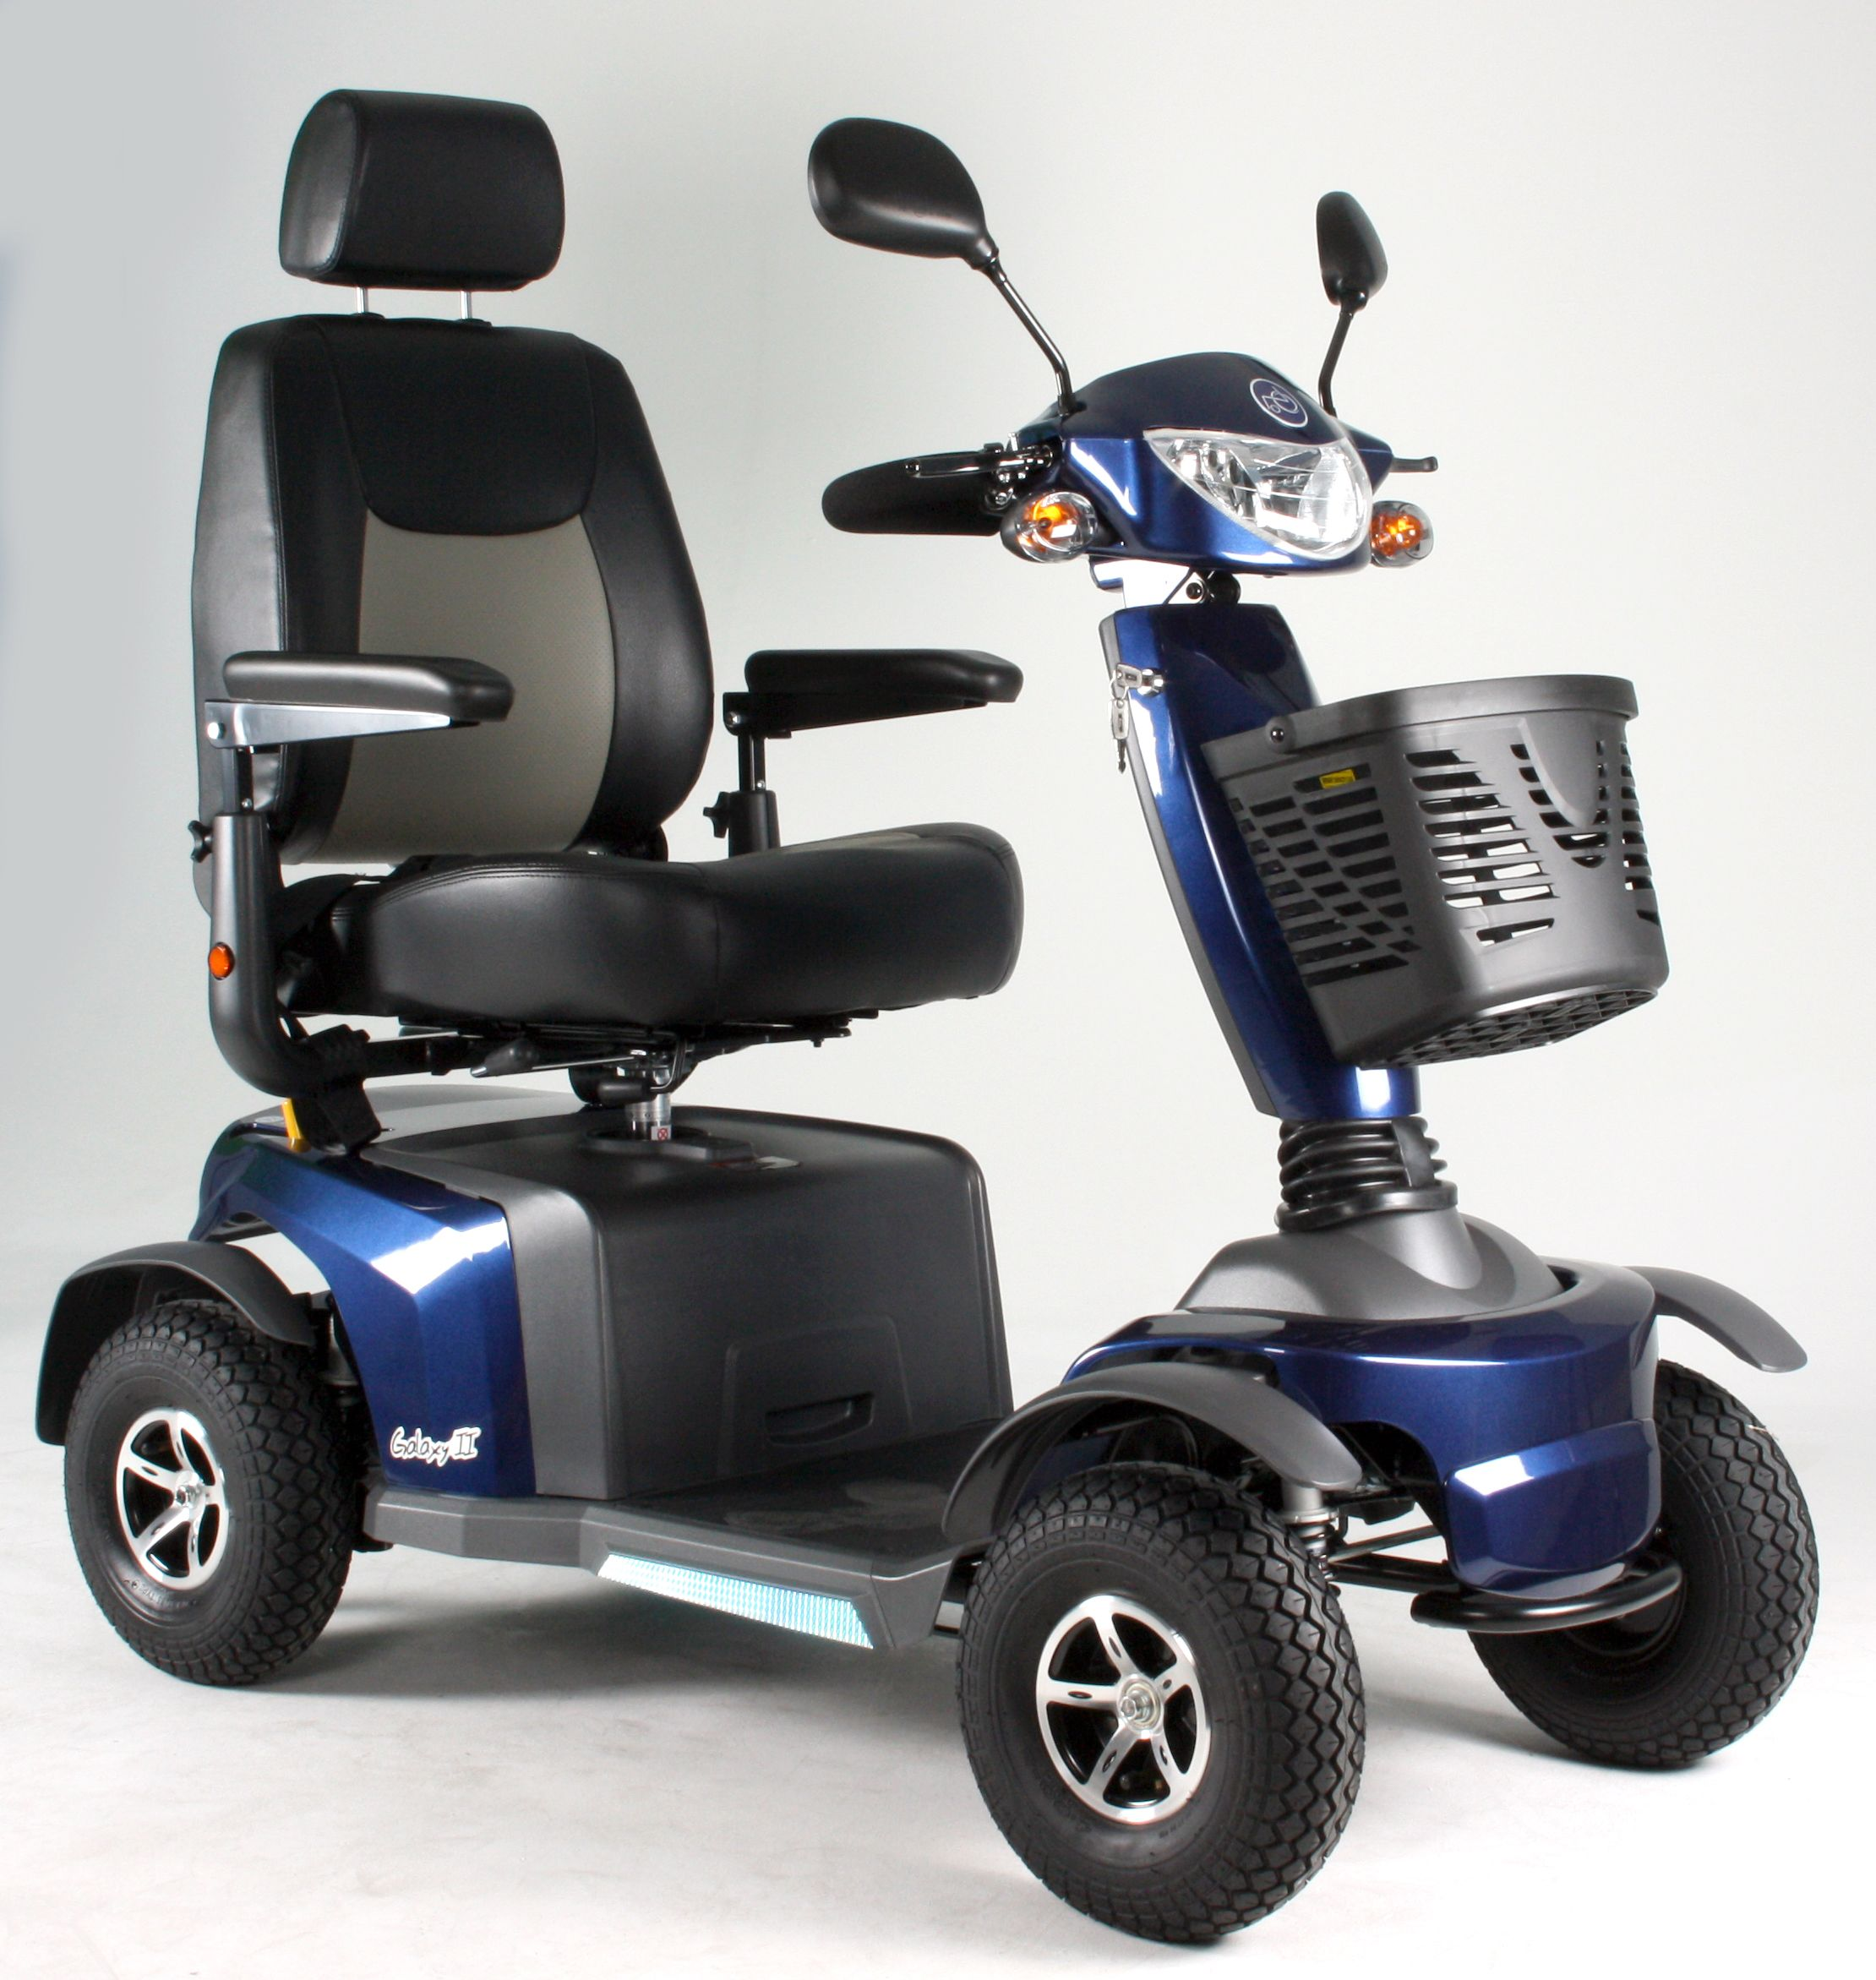 VanOs Medical Excel Galaxy ll 4 scooter. Whether buying